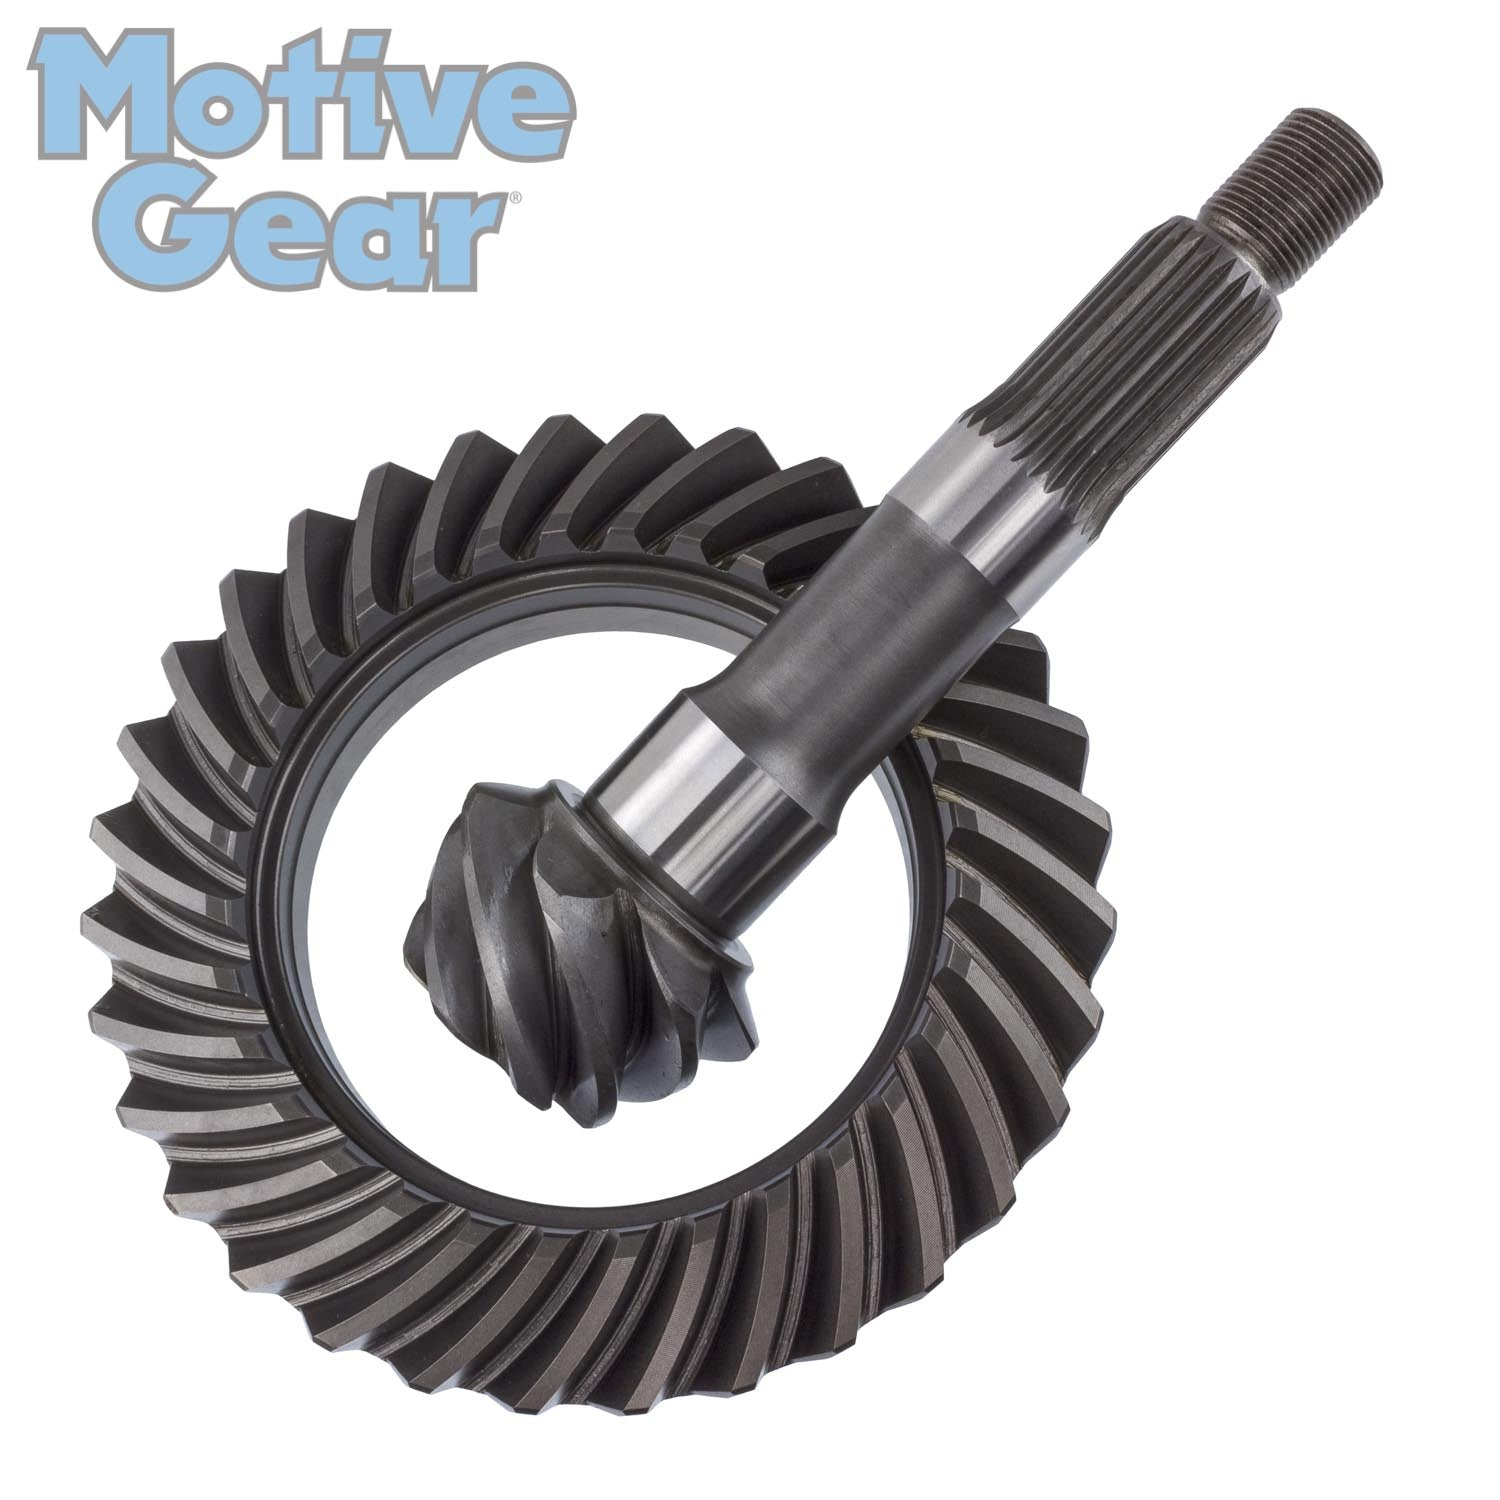 Suzuki 6.9 Motive Gear Ring and Pinion Gear Set